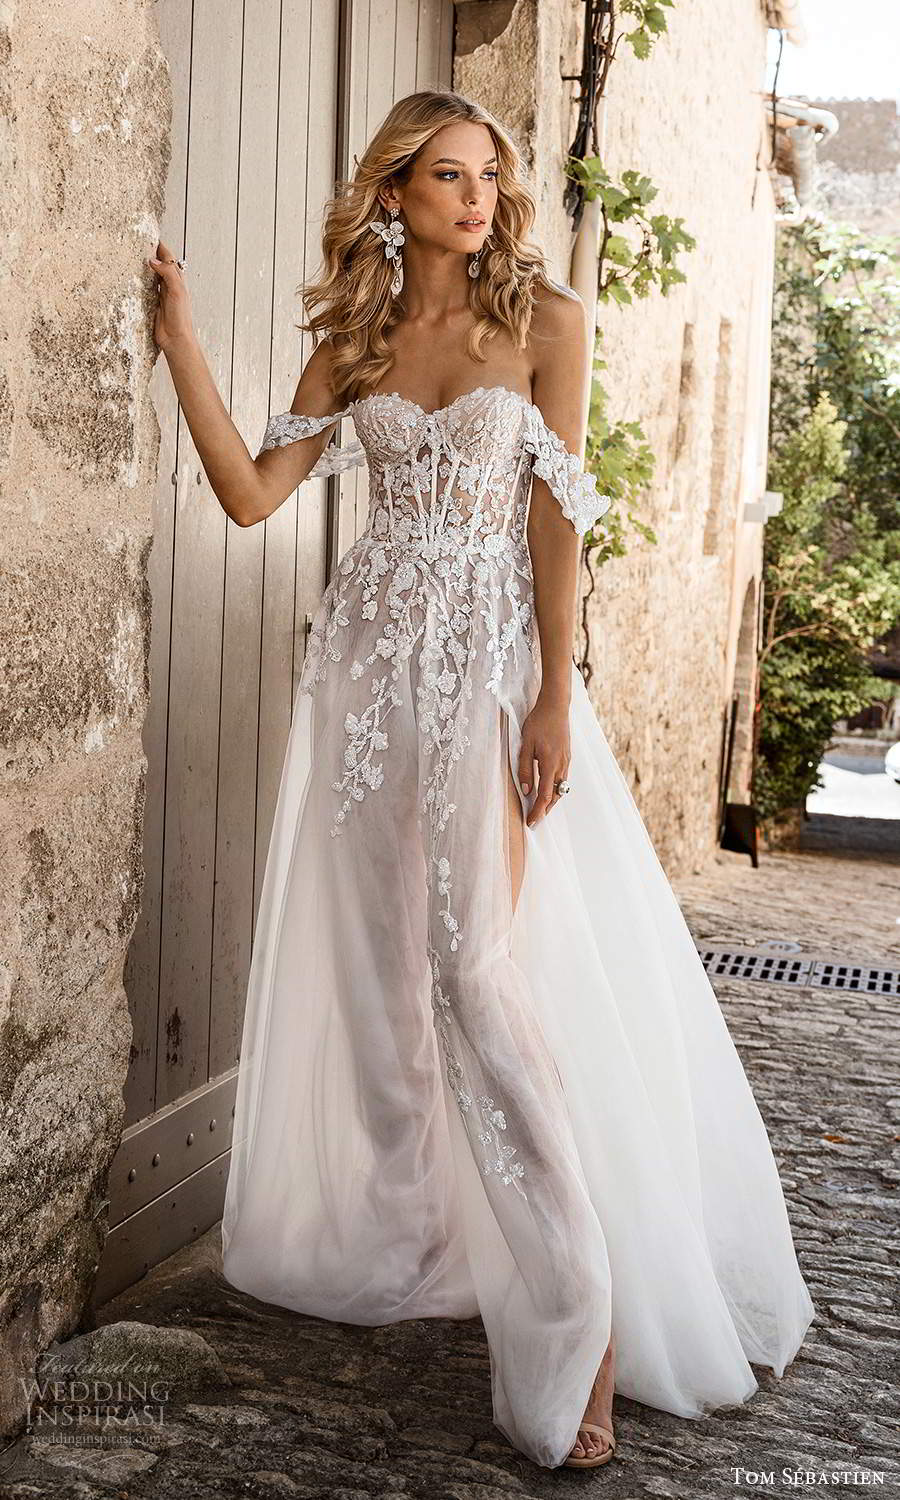 tom sebastien 2021 bridal provence off shoulder straps sweetheart neckline heavily embellished bodice a line ball gown wedding dress chapel train slit skirt (1) mv